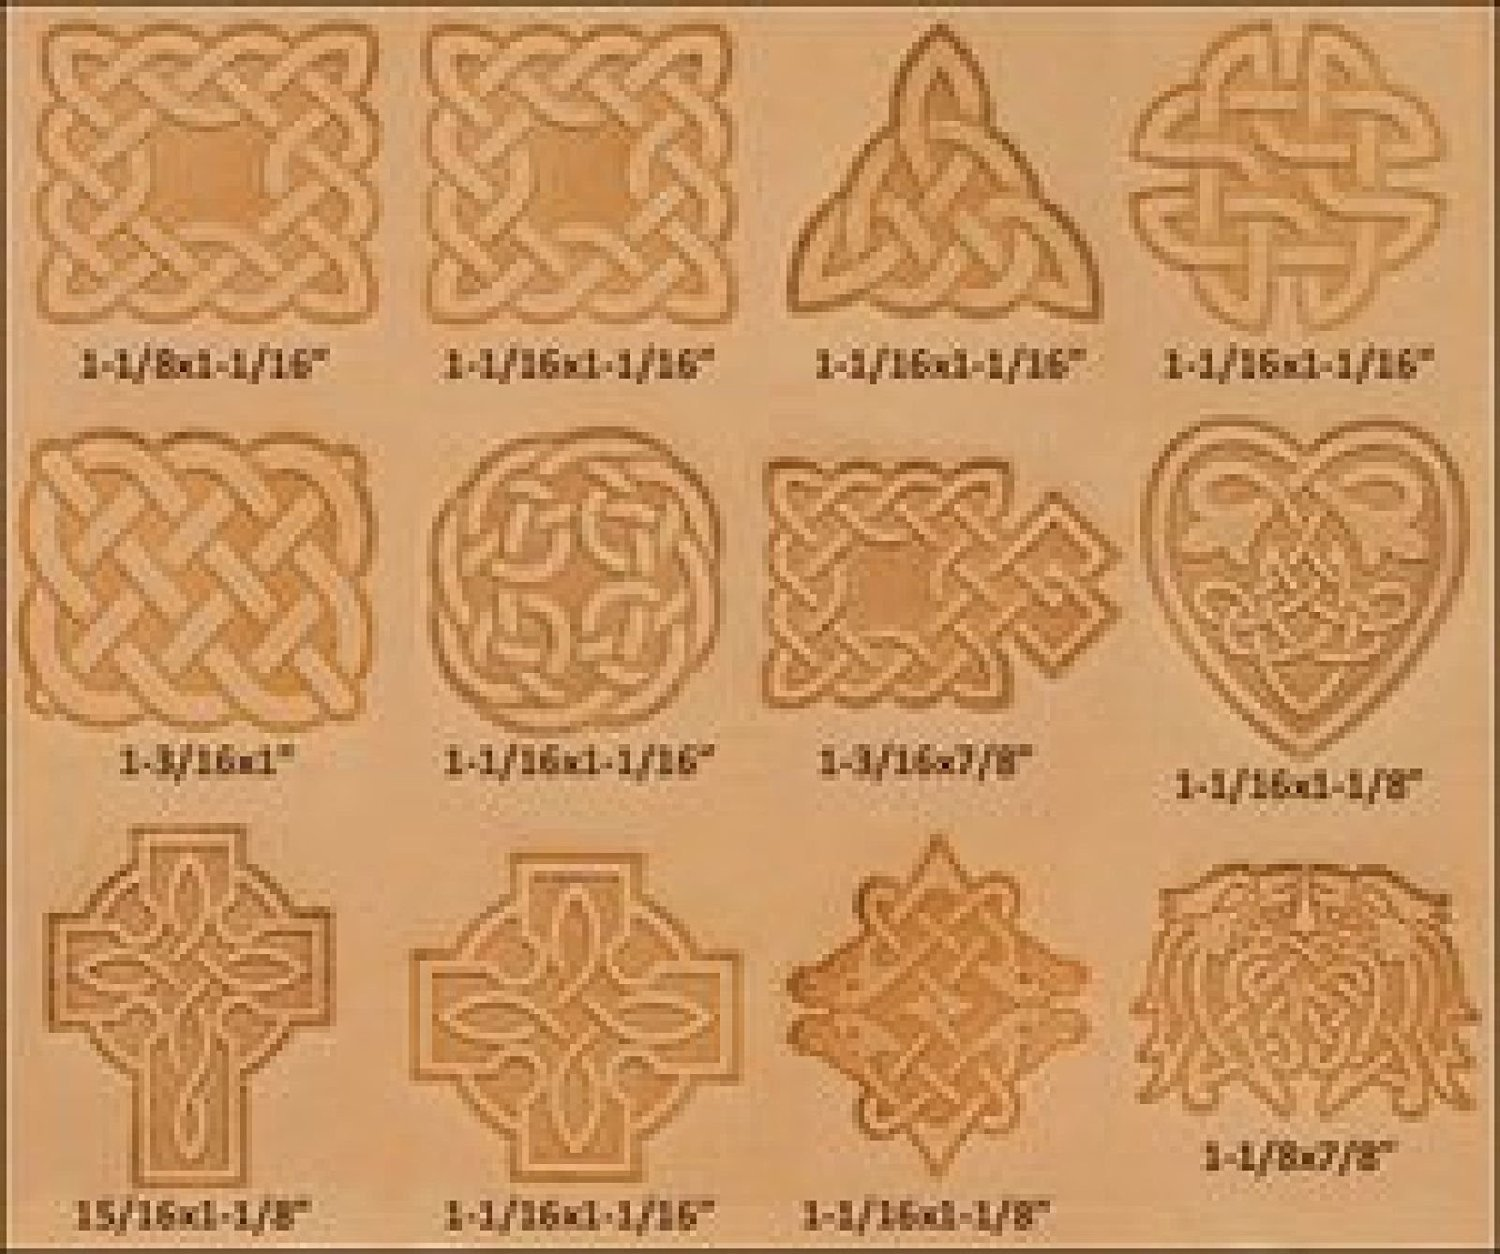 Tandy Leather Craftool Celtic Stamp Set of 12 8161-00 by Tandy Leather